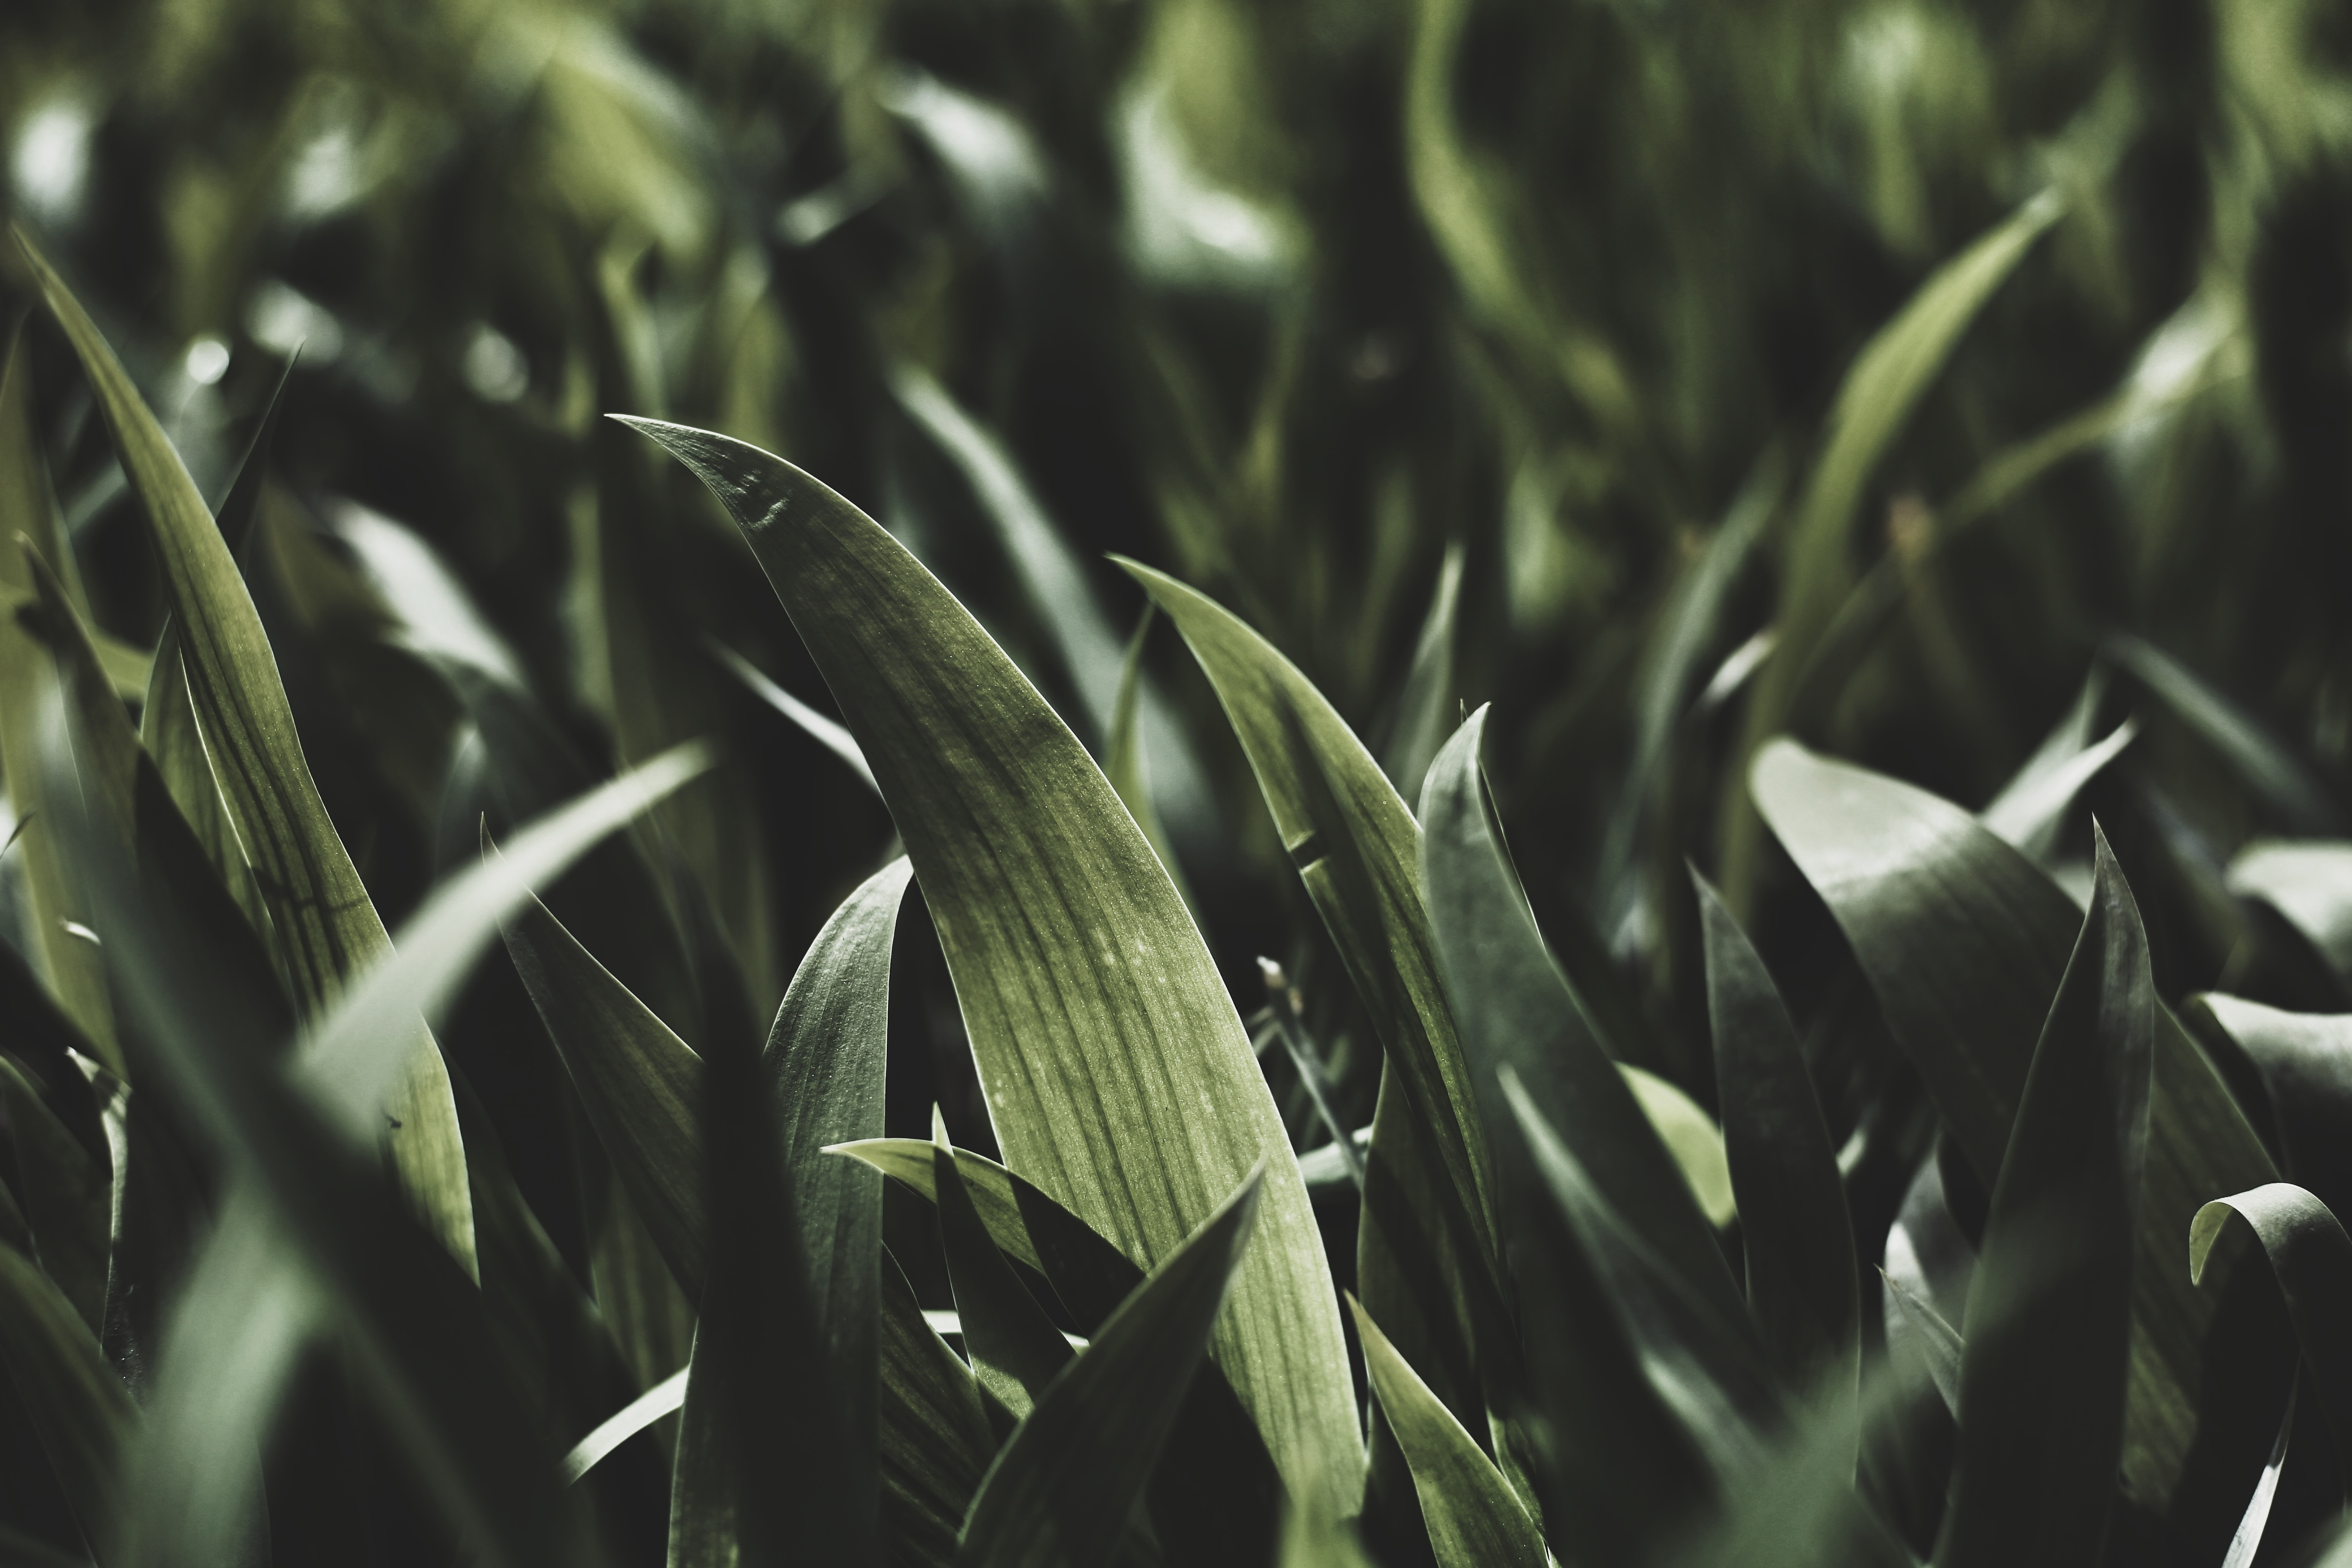 General 5472x3648 plants green nature leaves photography depth of field